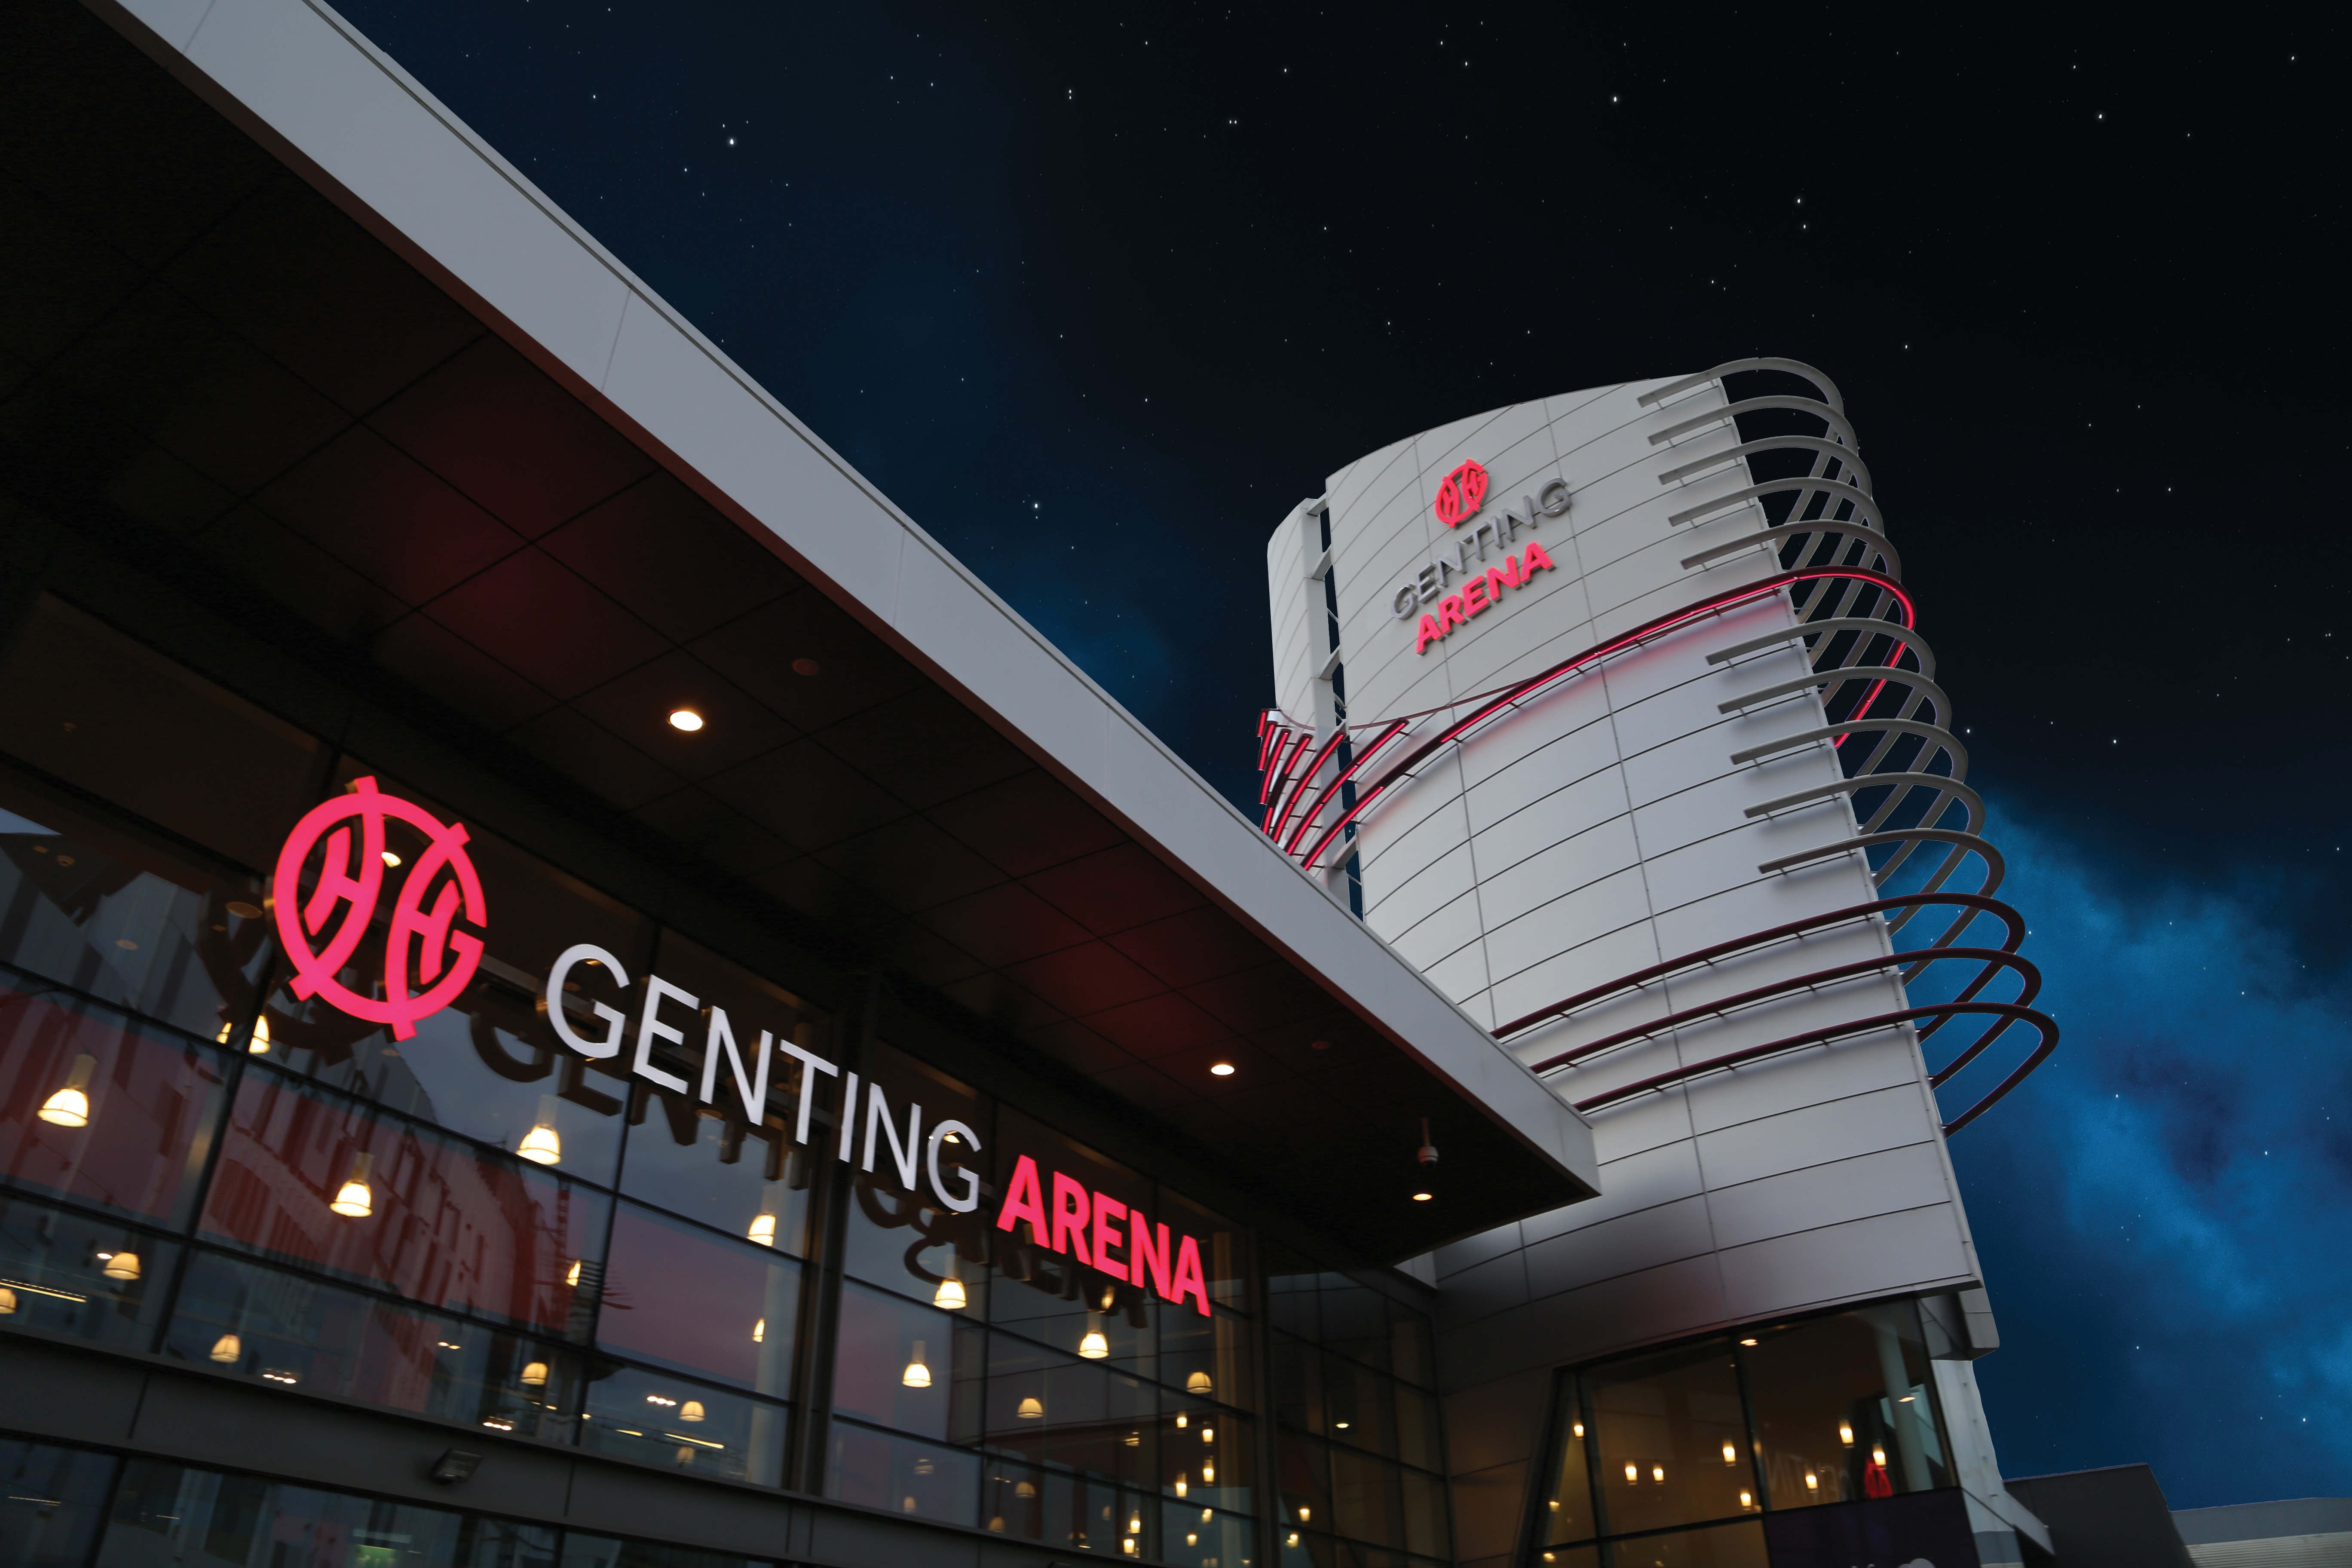 genting arena revamps backstage area for artists and production teams